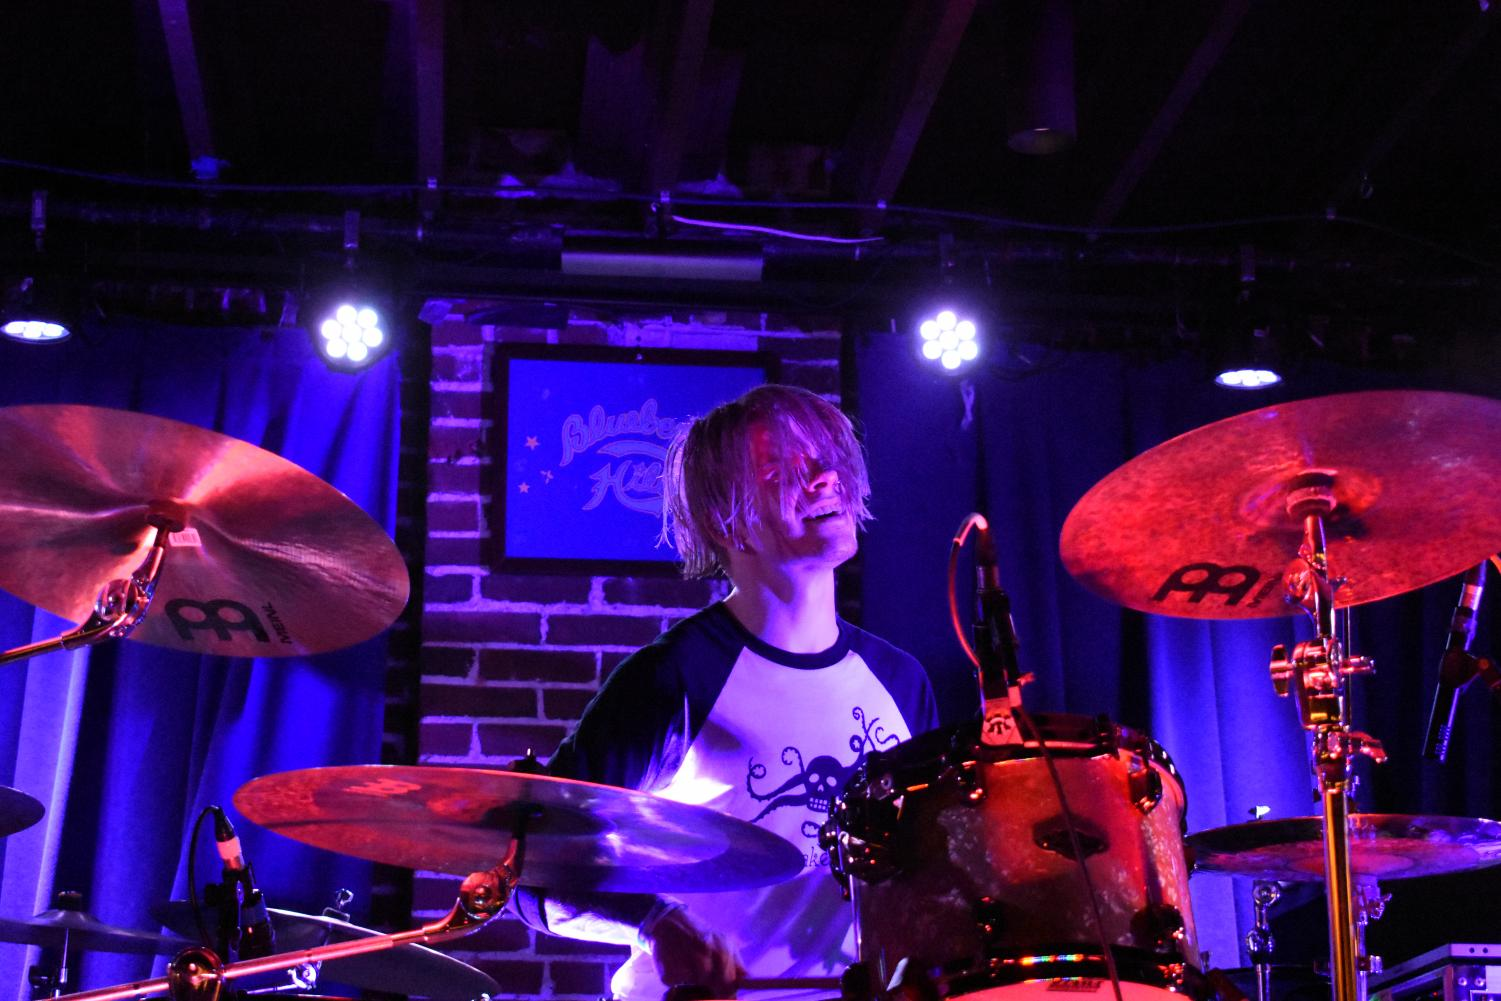 Scuzz's Drummer rocking out at The Duck Room.